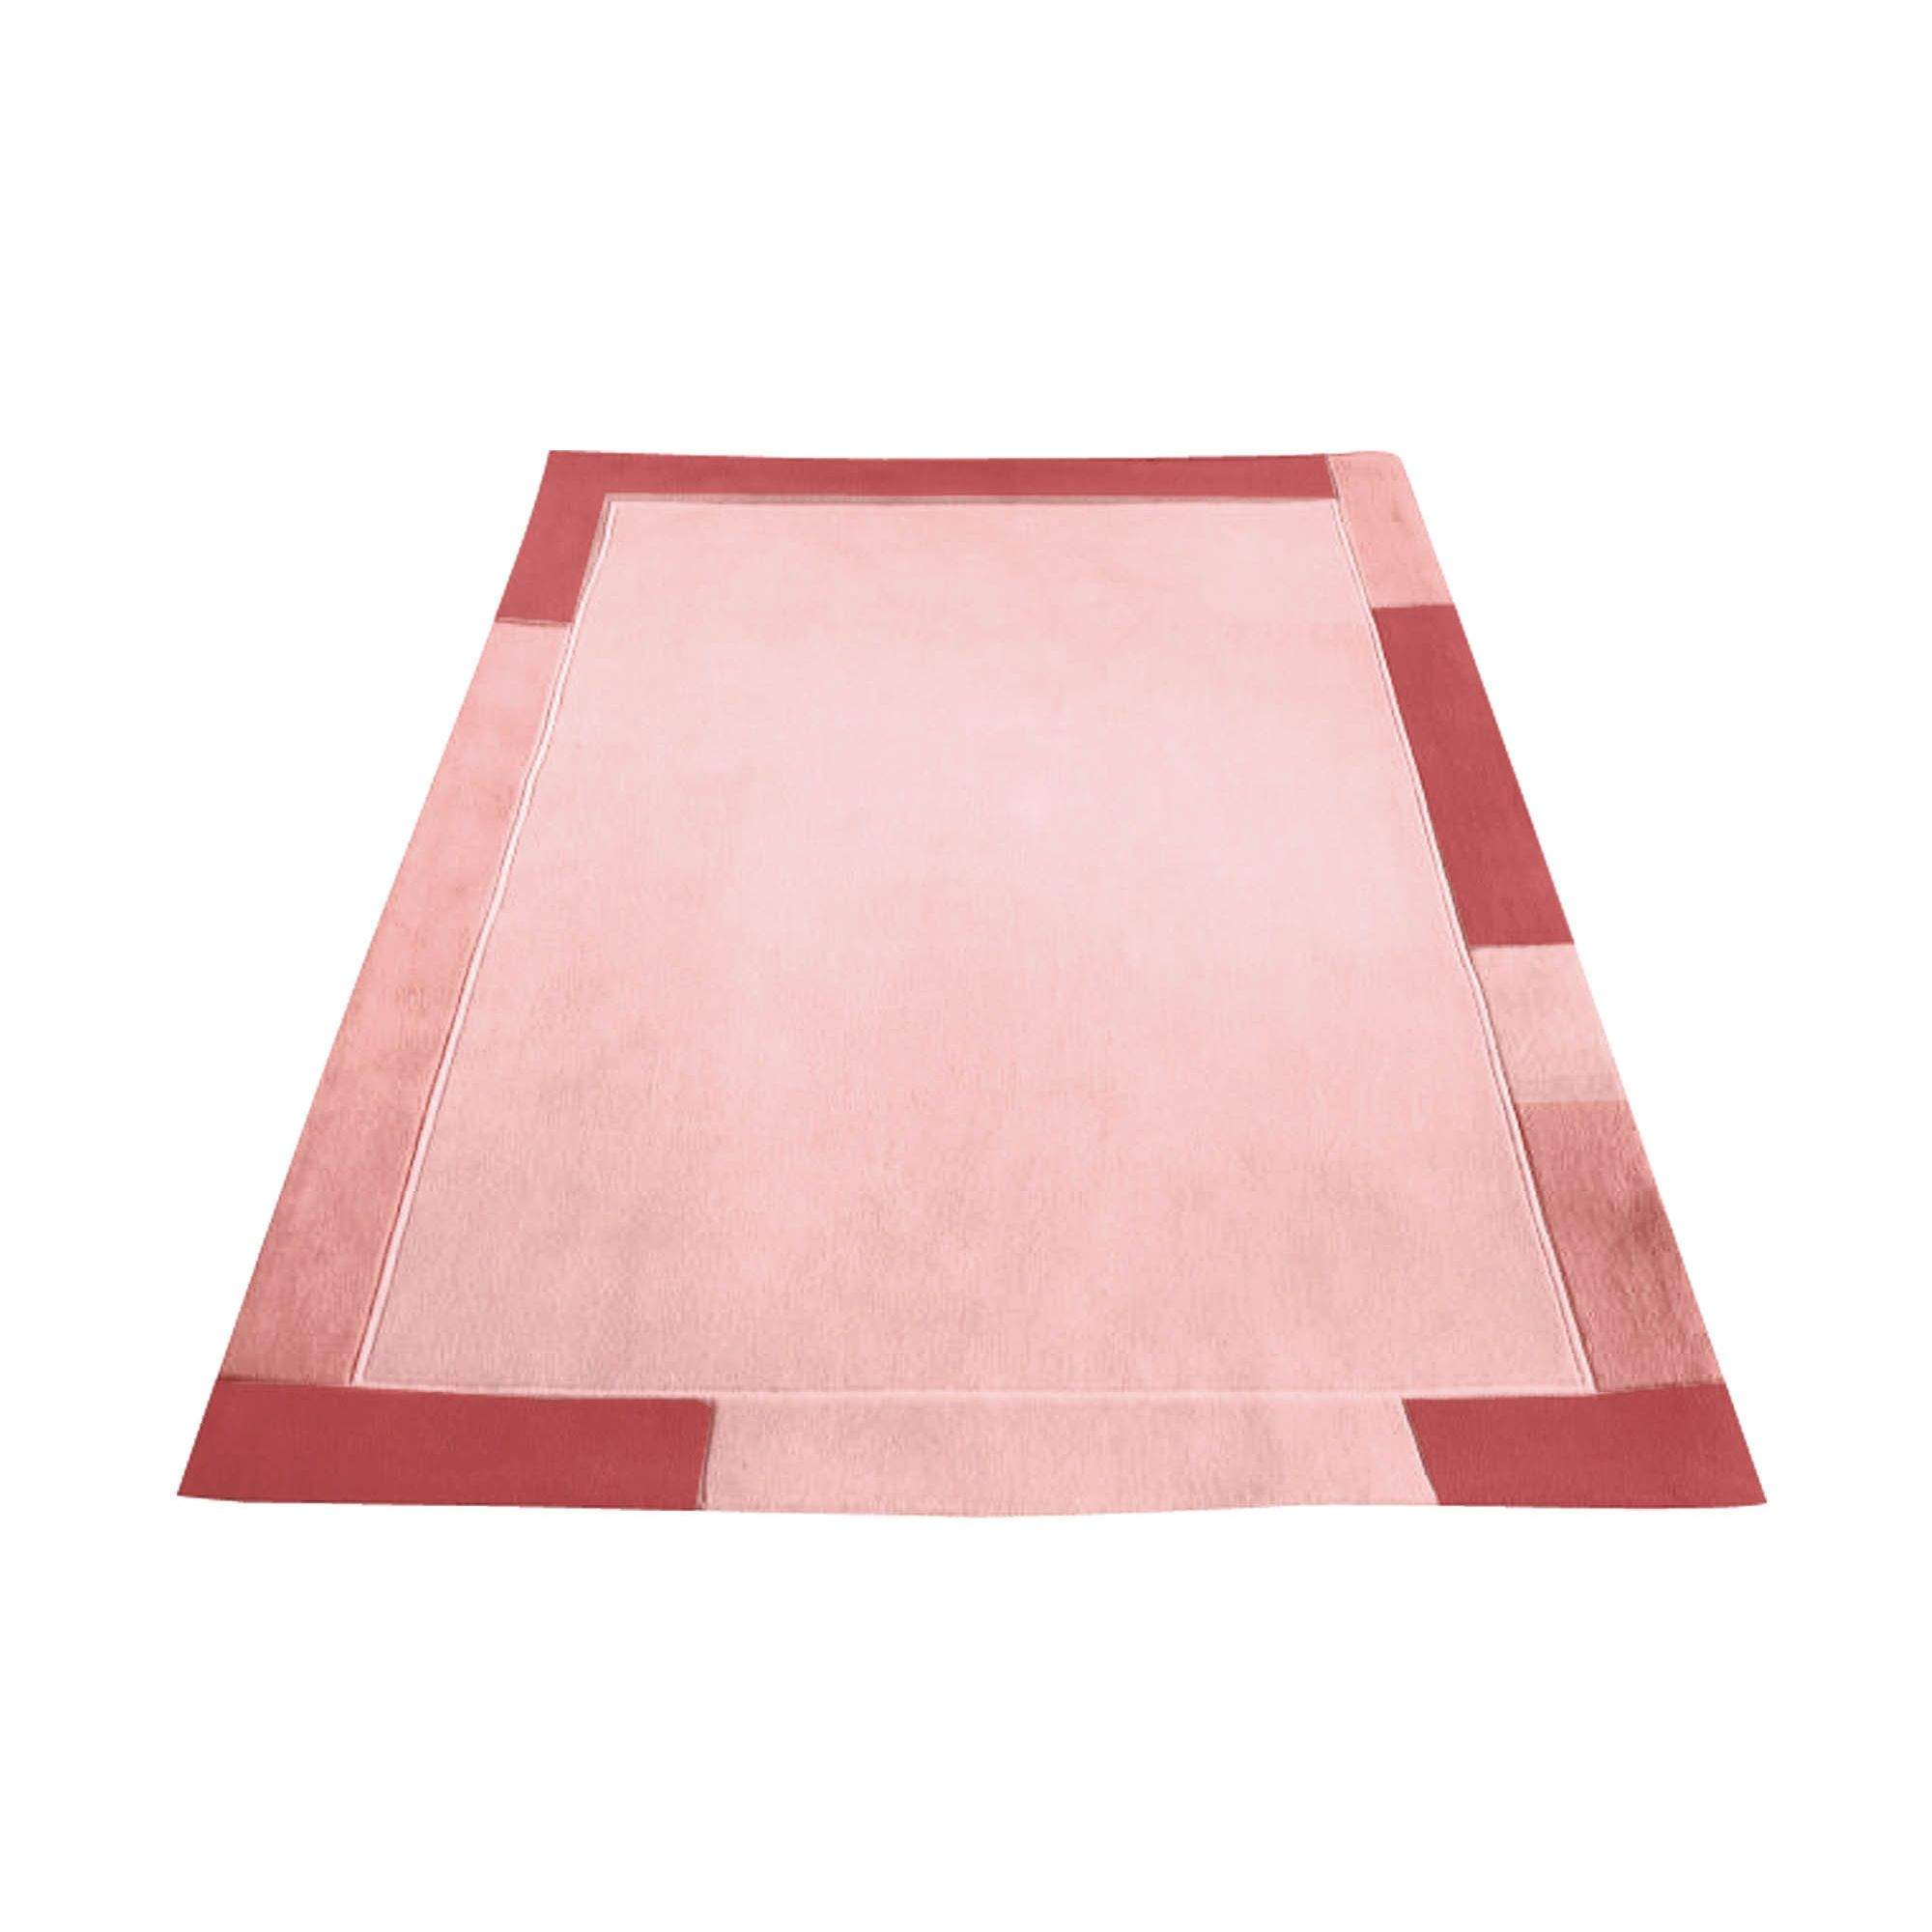 Premier Housewares Terracotta High Tufted Rug - 120 cm x 170 cm (3 ft 11 in x 4 ft 6 in)